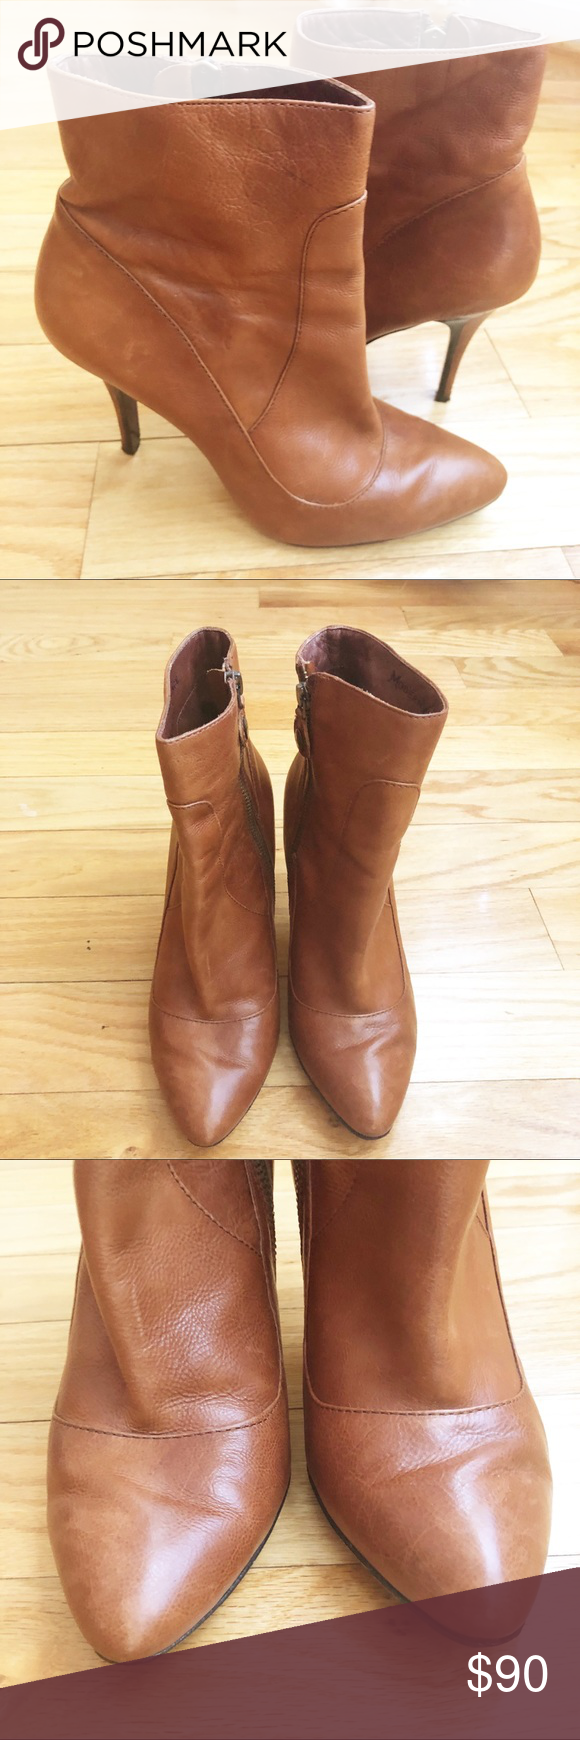 1d51931b69758 Vero Cuoio Cognac Modern Vintage Booties Size 8.5 Gently used in excellent  condition Natural leather creasing and minor scuffs Vero Cuoio Shoes Ankle  Boots ...